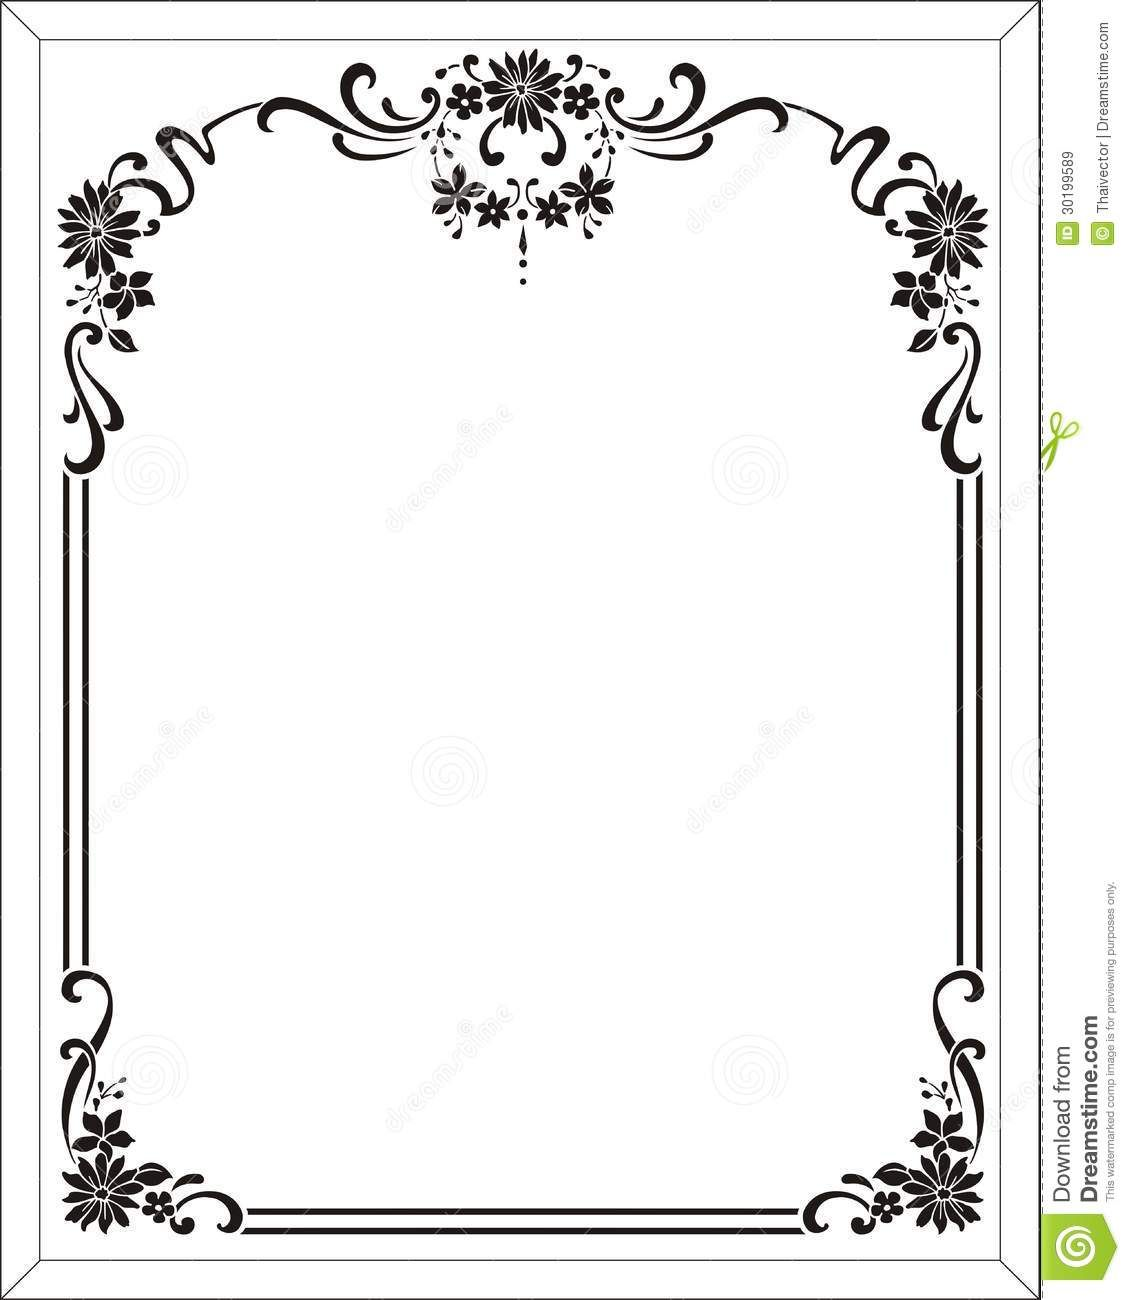 picture frame stencils | Royalty Free Stock Images: Flower frame ...